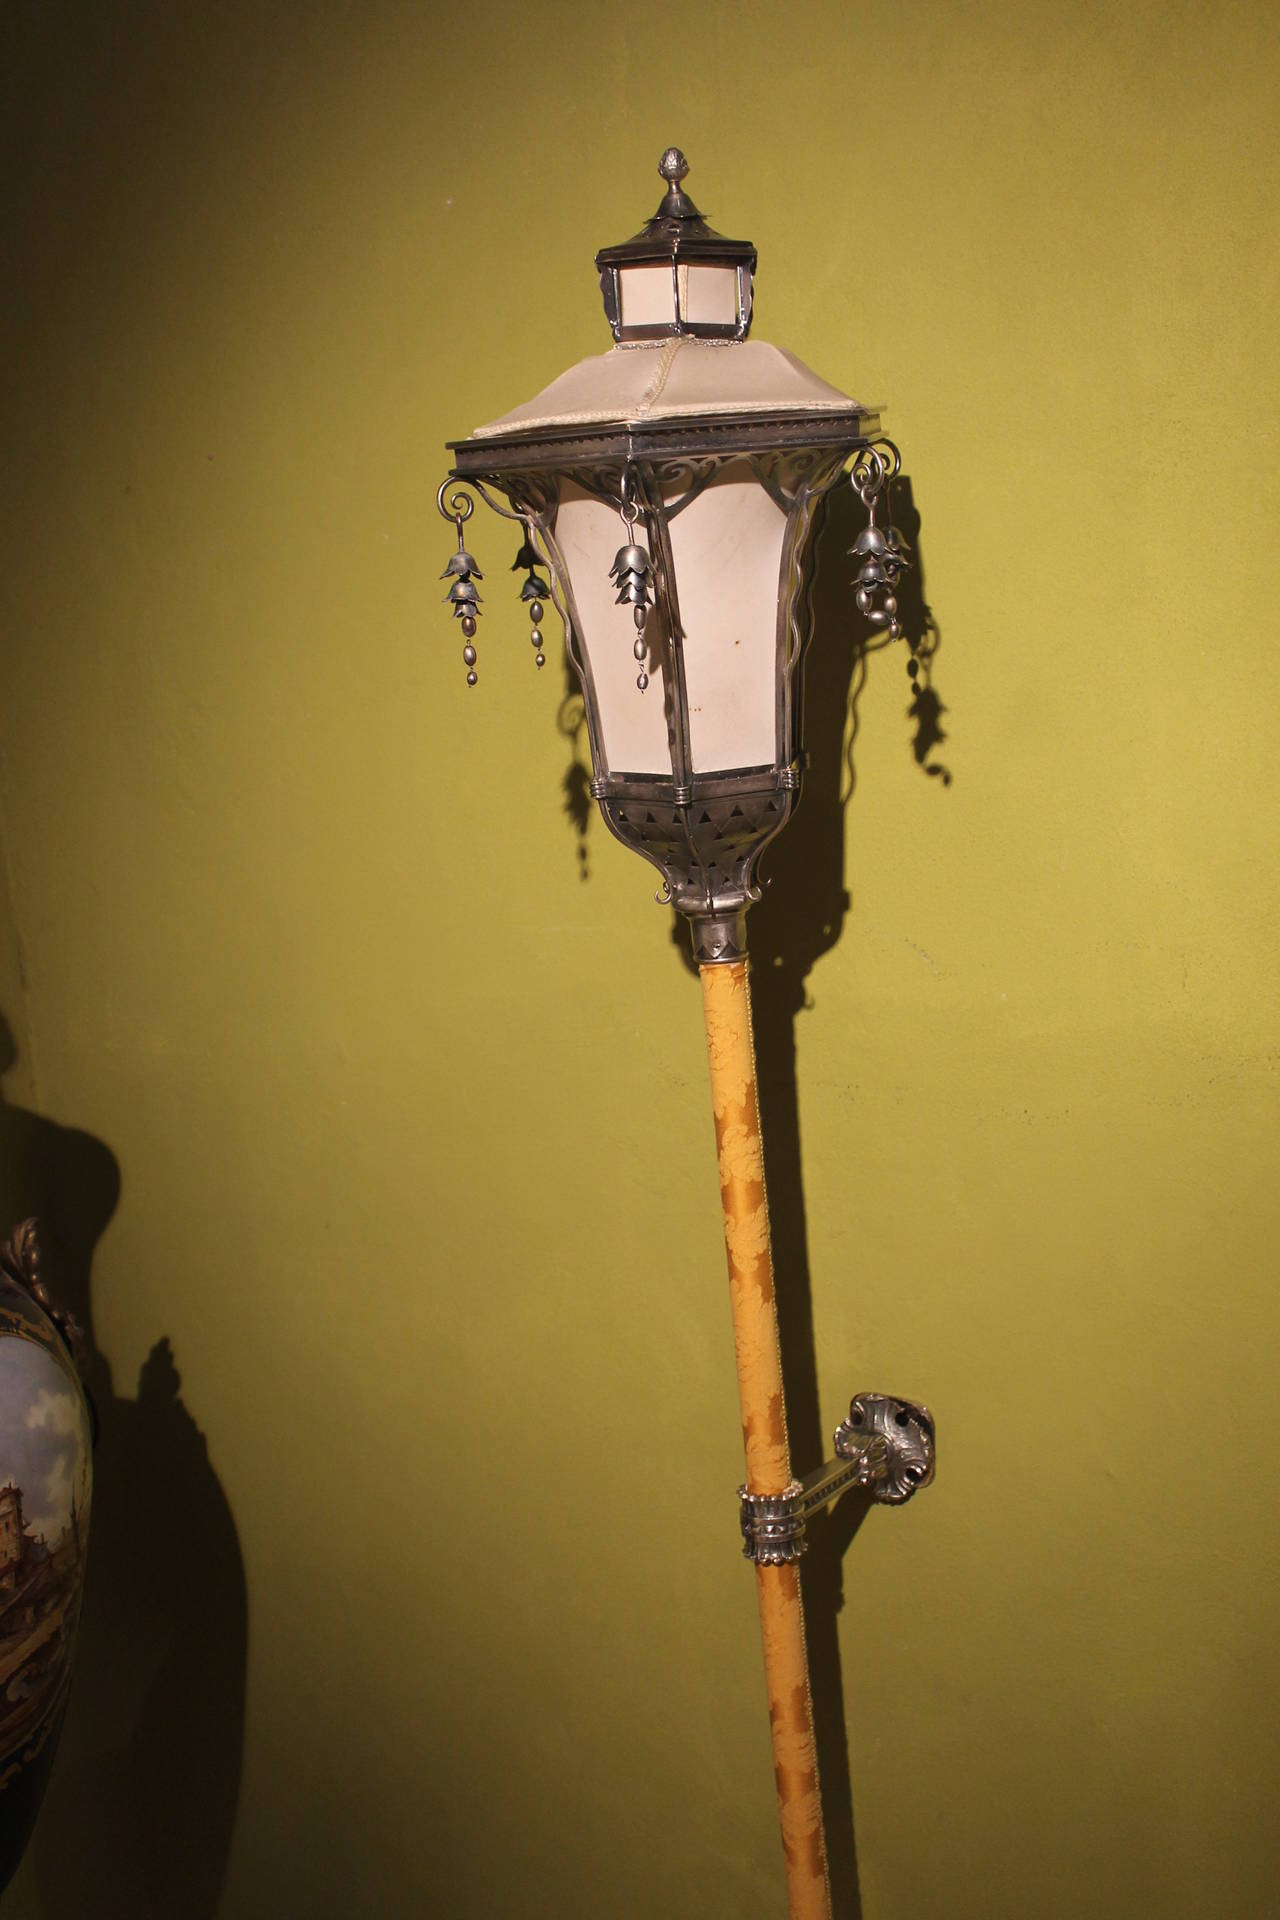 A beautiful venetian chiseled silvered metal processional wall lamp embellished with dangles. White silk pagoda shape shade. The wood pole is put in a silvered bronze support and is decorated with a yellow damask and can be easily wall